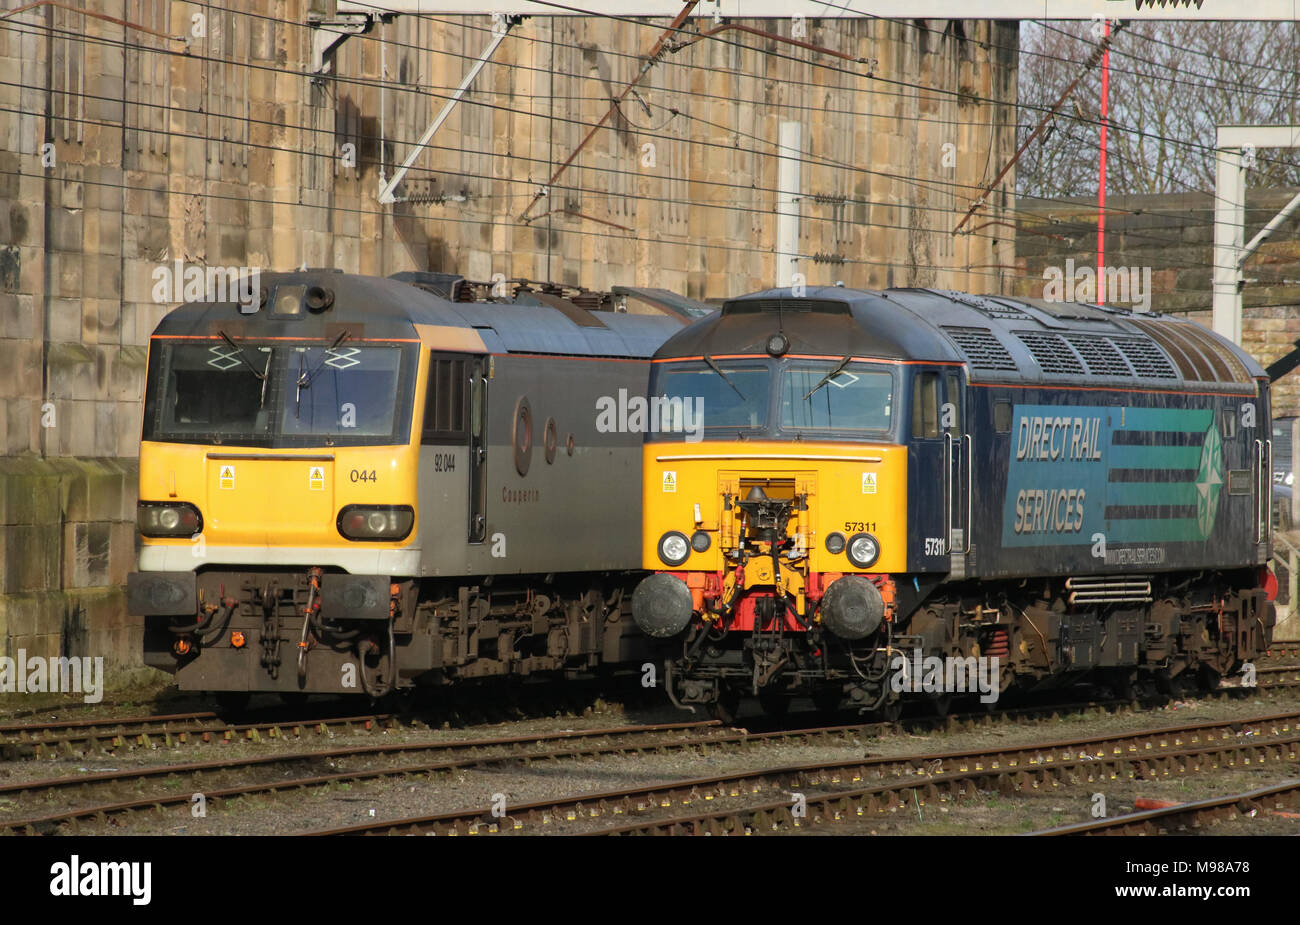 Class 57 diesel electric locomotive in DRS livery and class 92 electric British rail two-tone grey livery wait for their next duty Carlisle station. - Stock Image